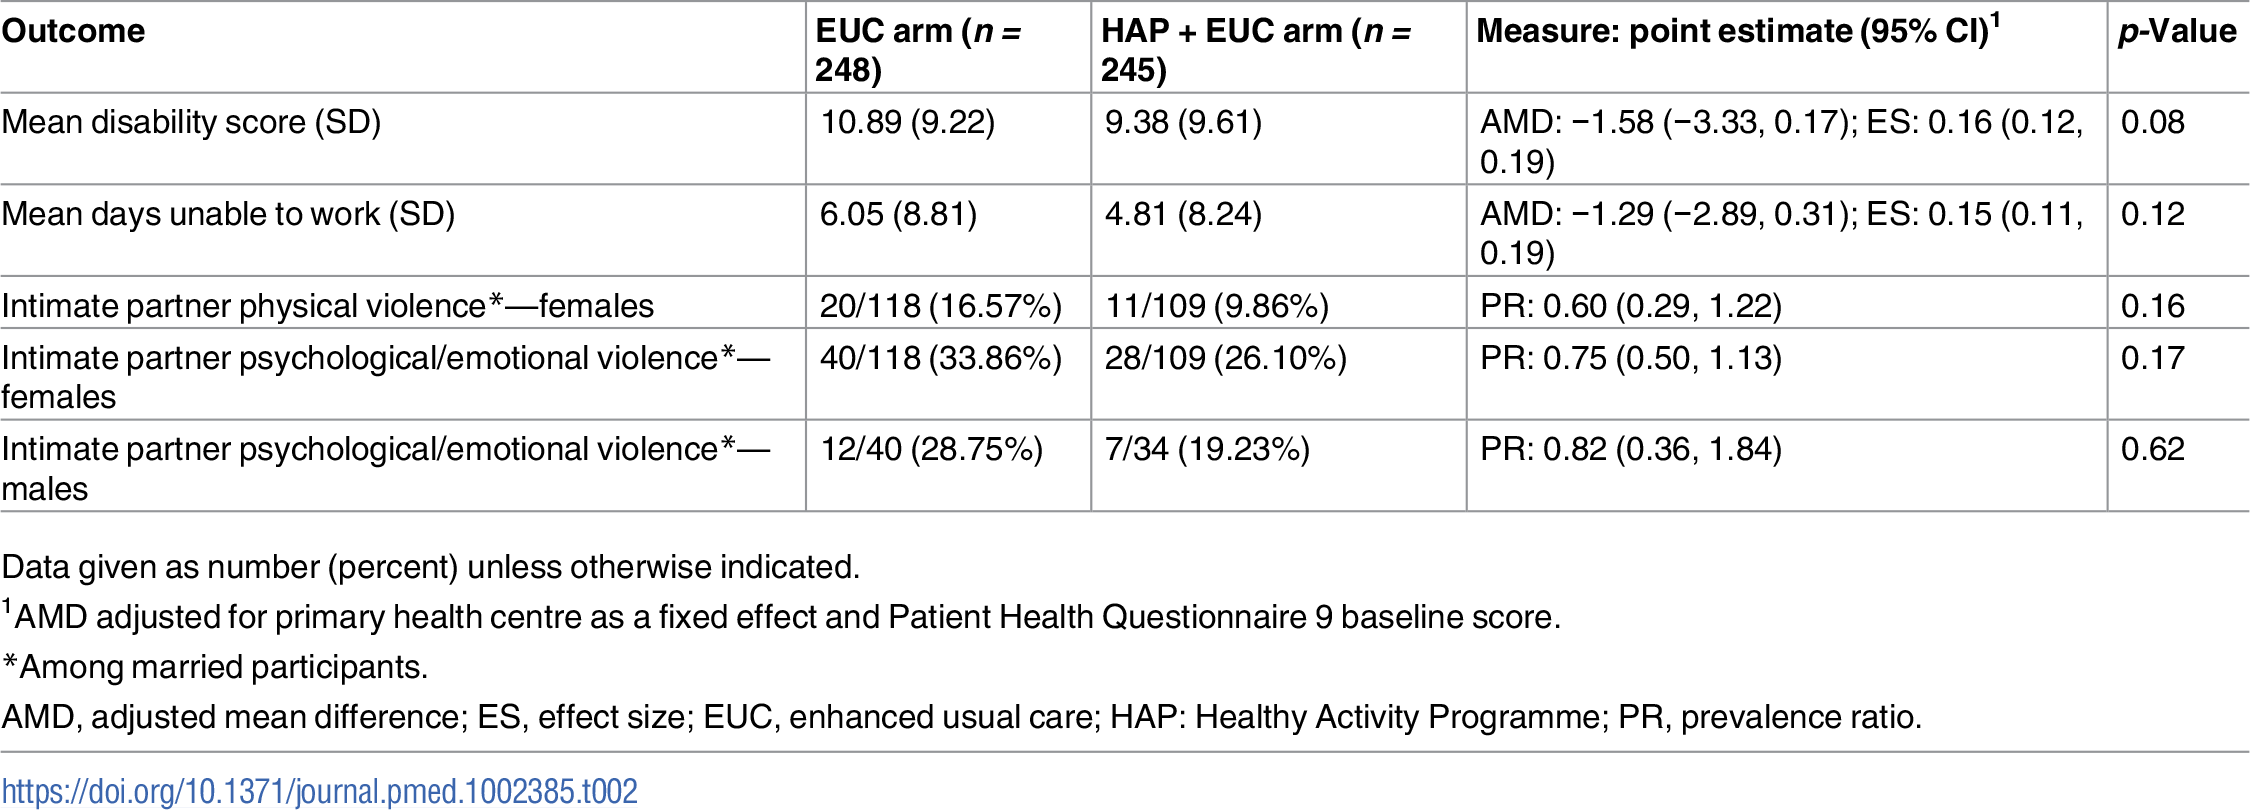 Effect of HAP plus EUC compared with EUC alone on disability and intimate partner violence at 12 months.